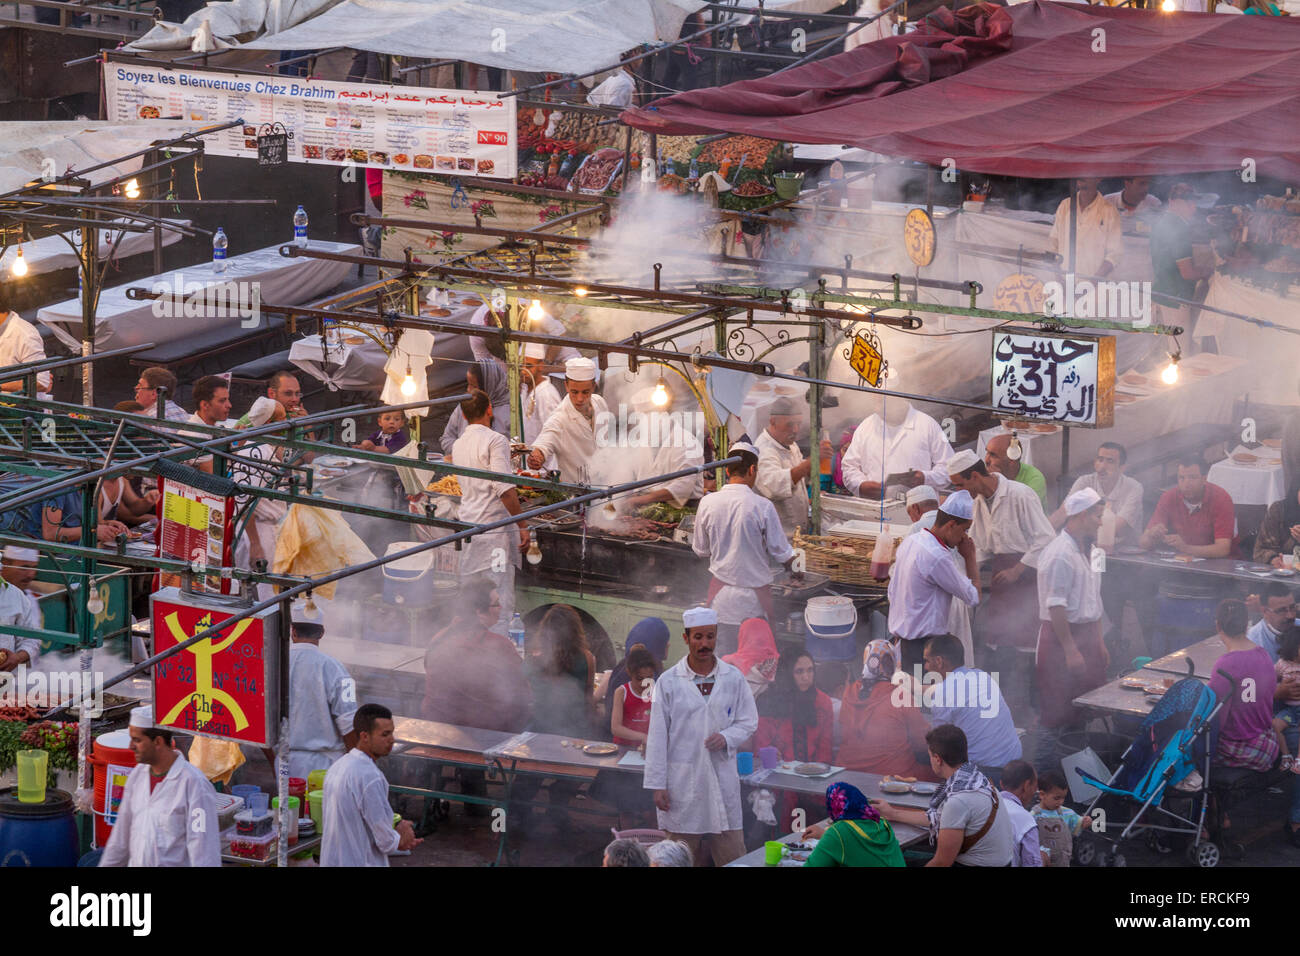 Jamaa el Fna is a square and market place in Marrakesh's Stock Photo